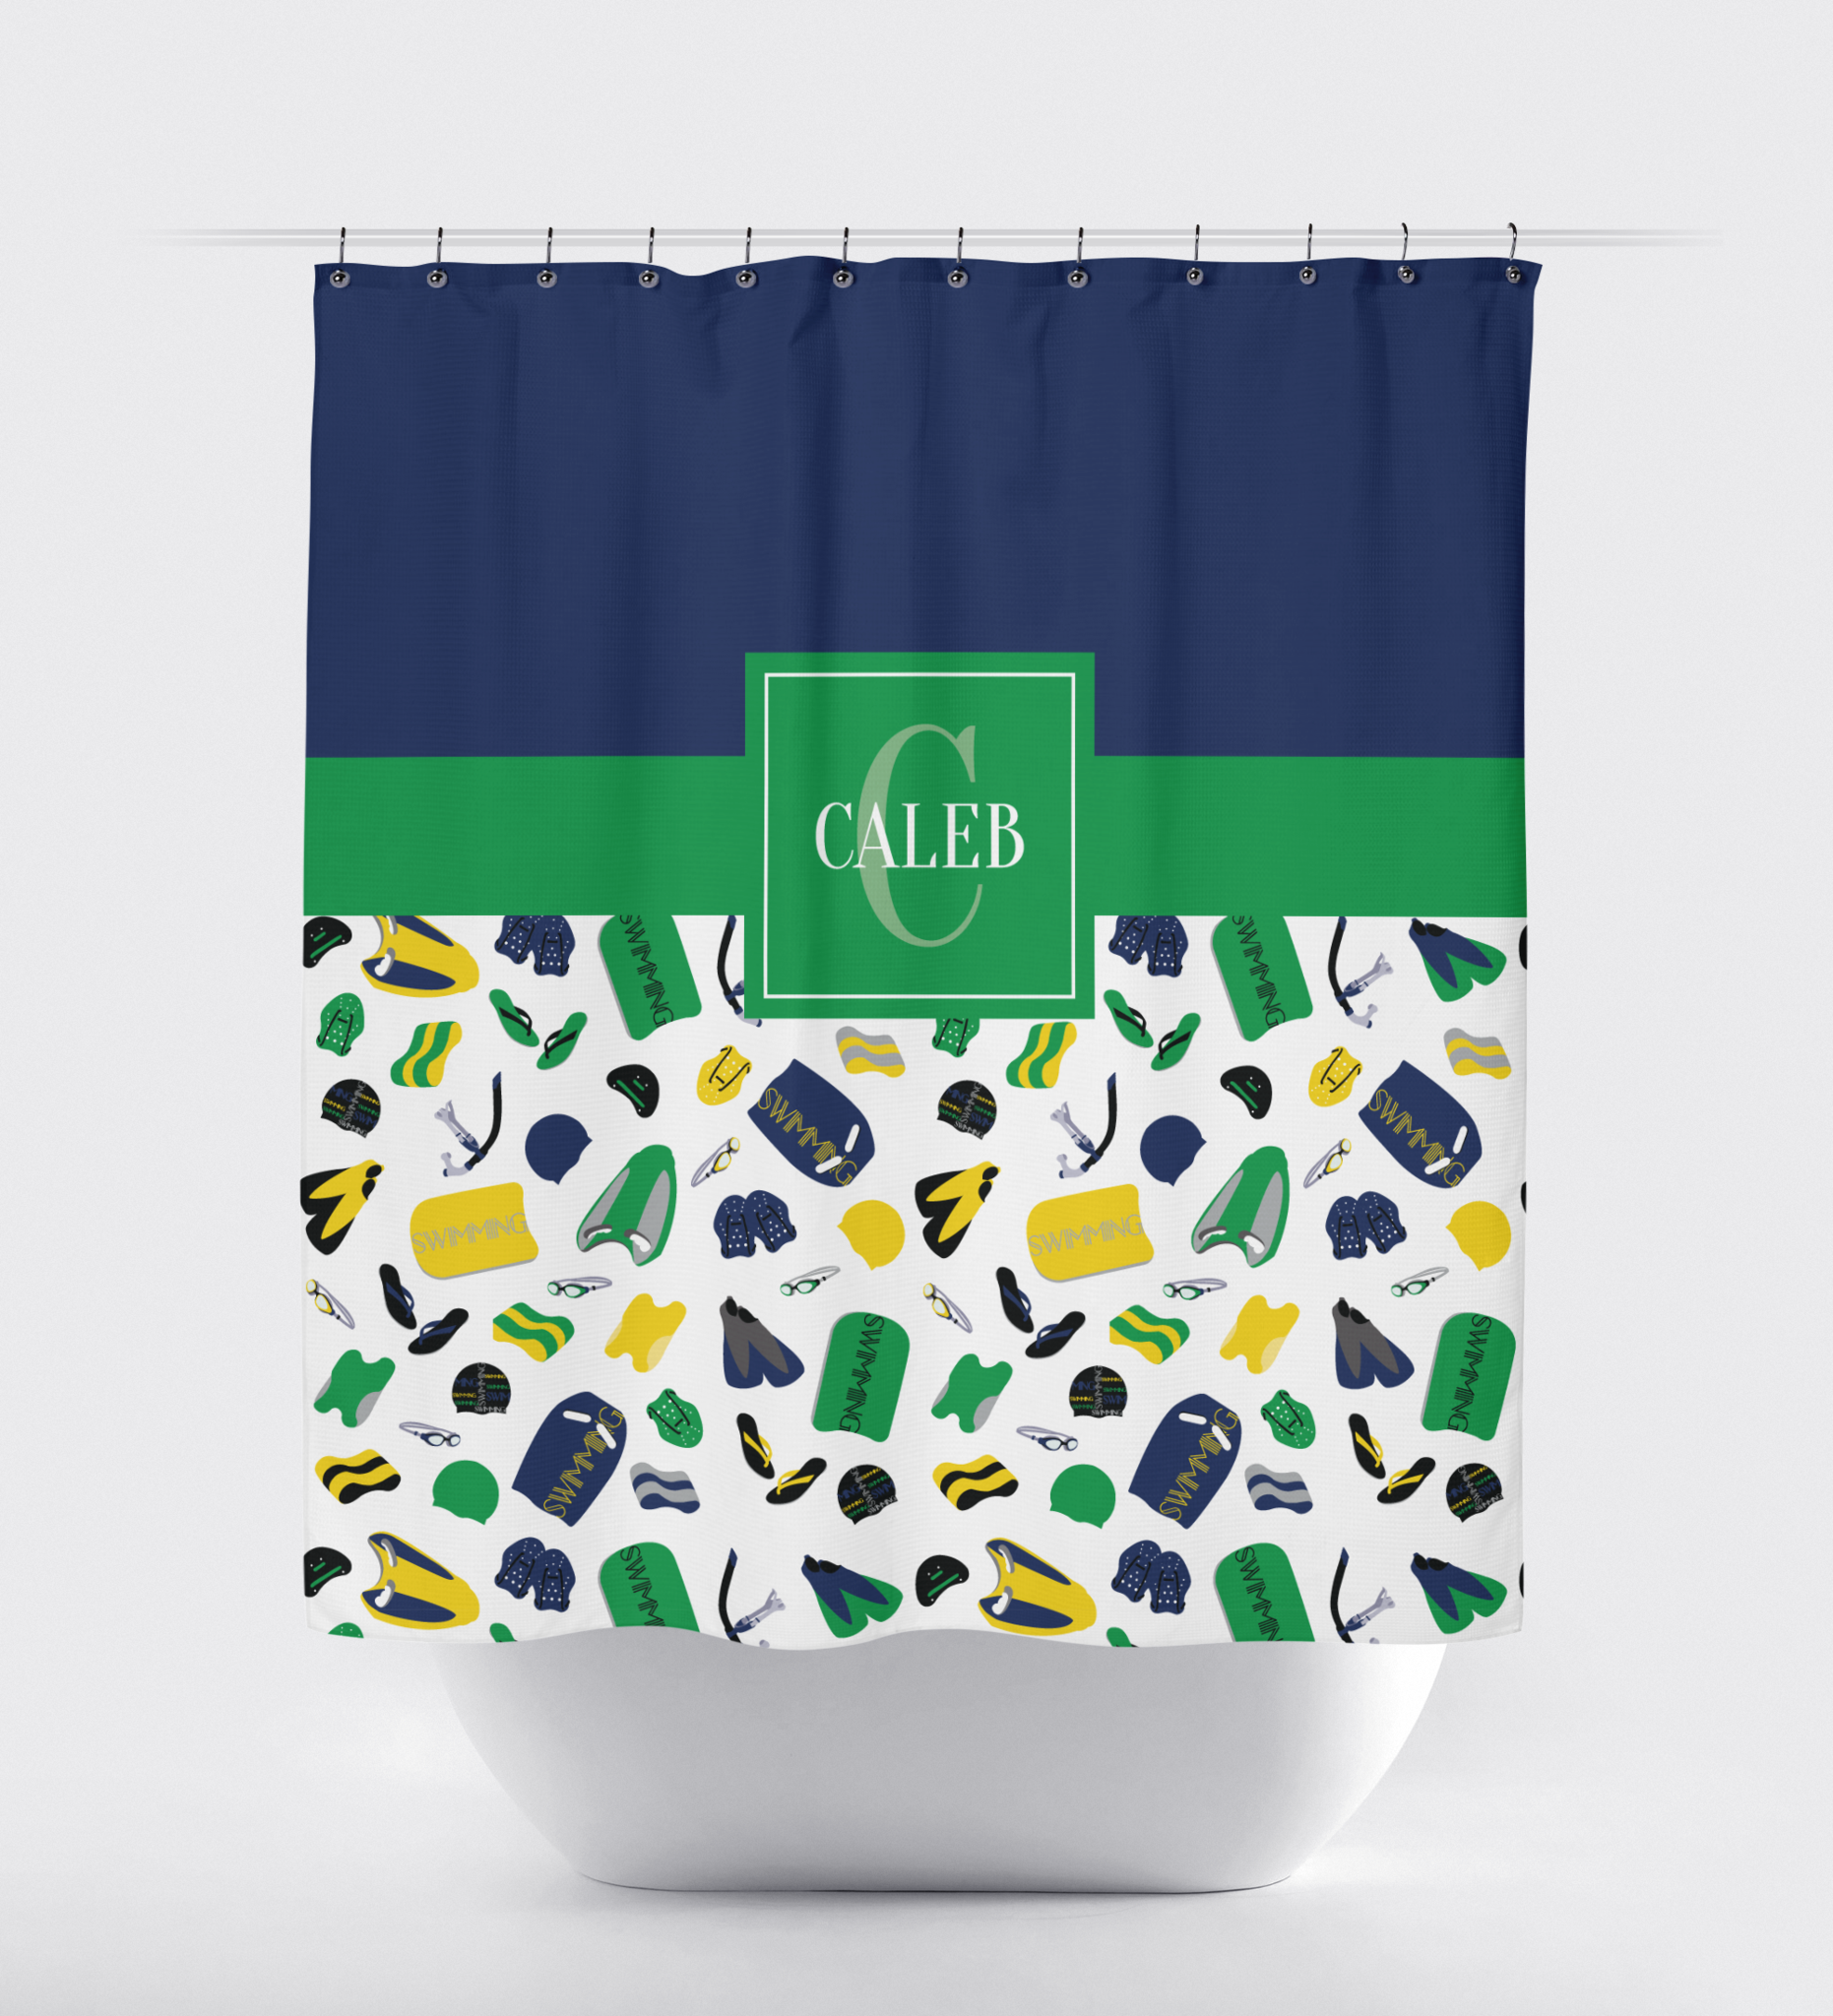 Swimming Themed Shower Curtain With Swimmer S Name Navy Blue